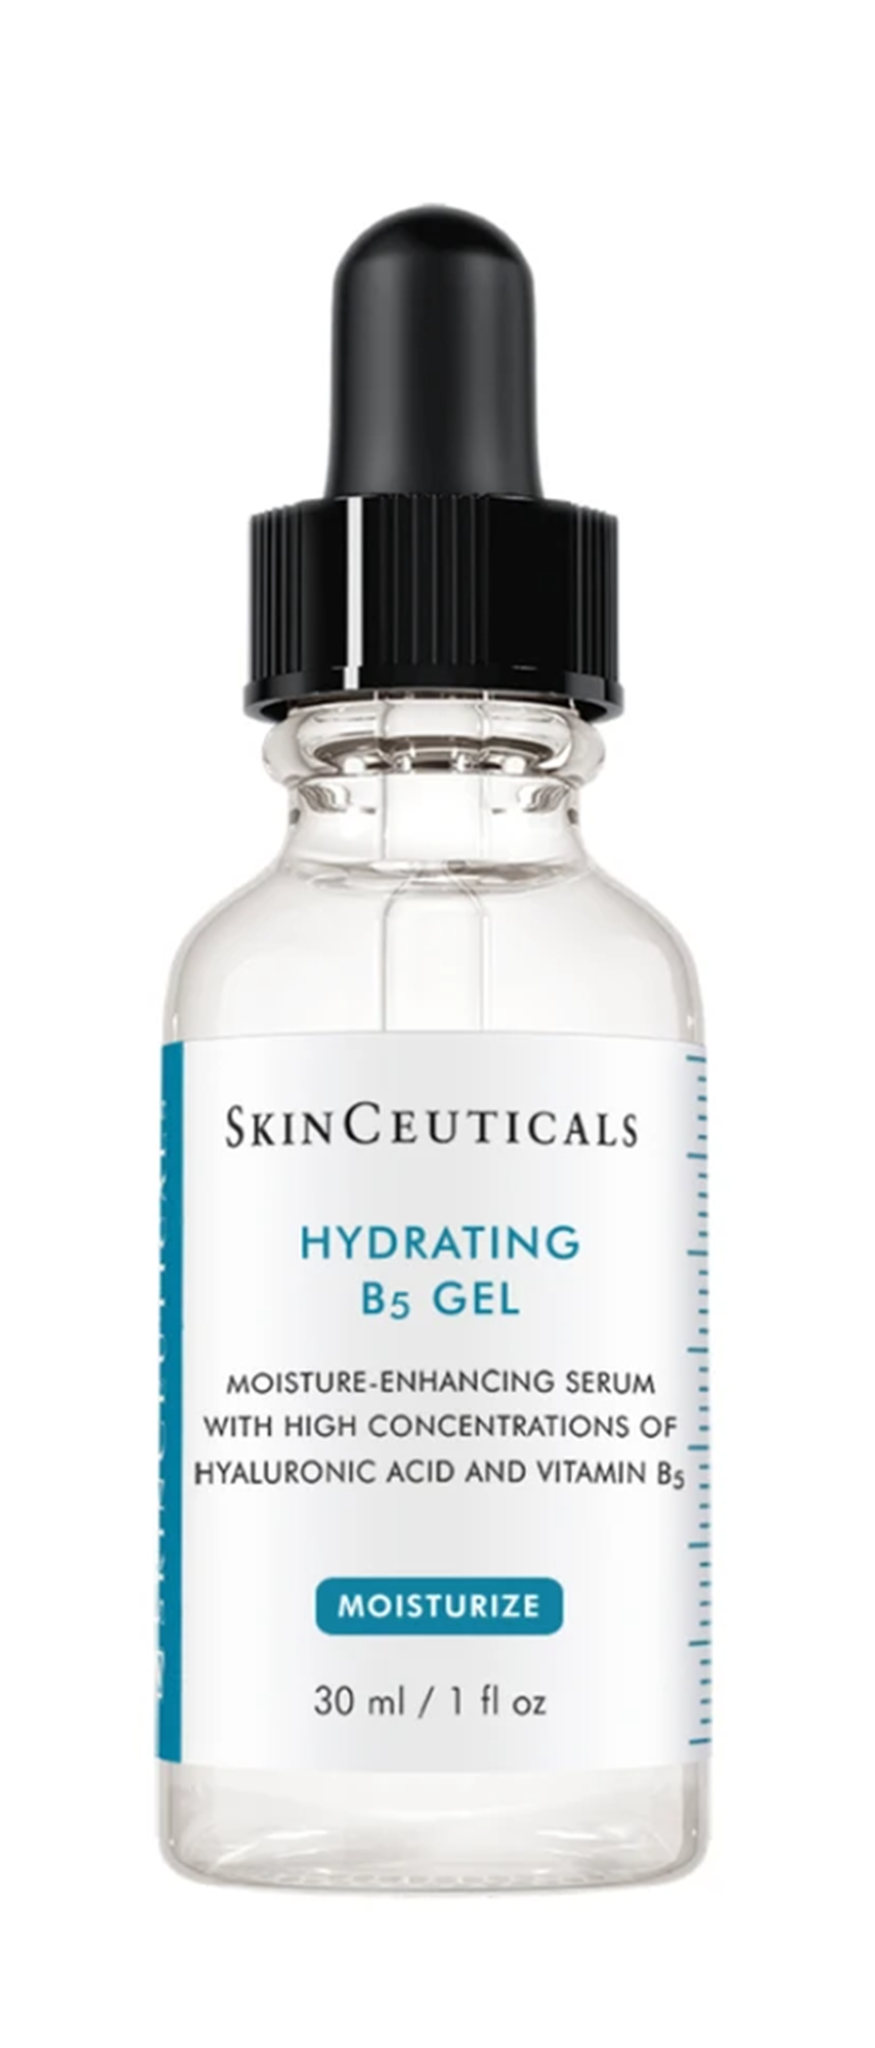 Hydrating B5 Gel Serum 30mL